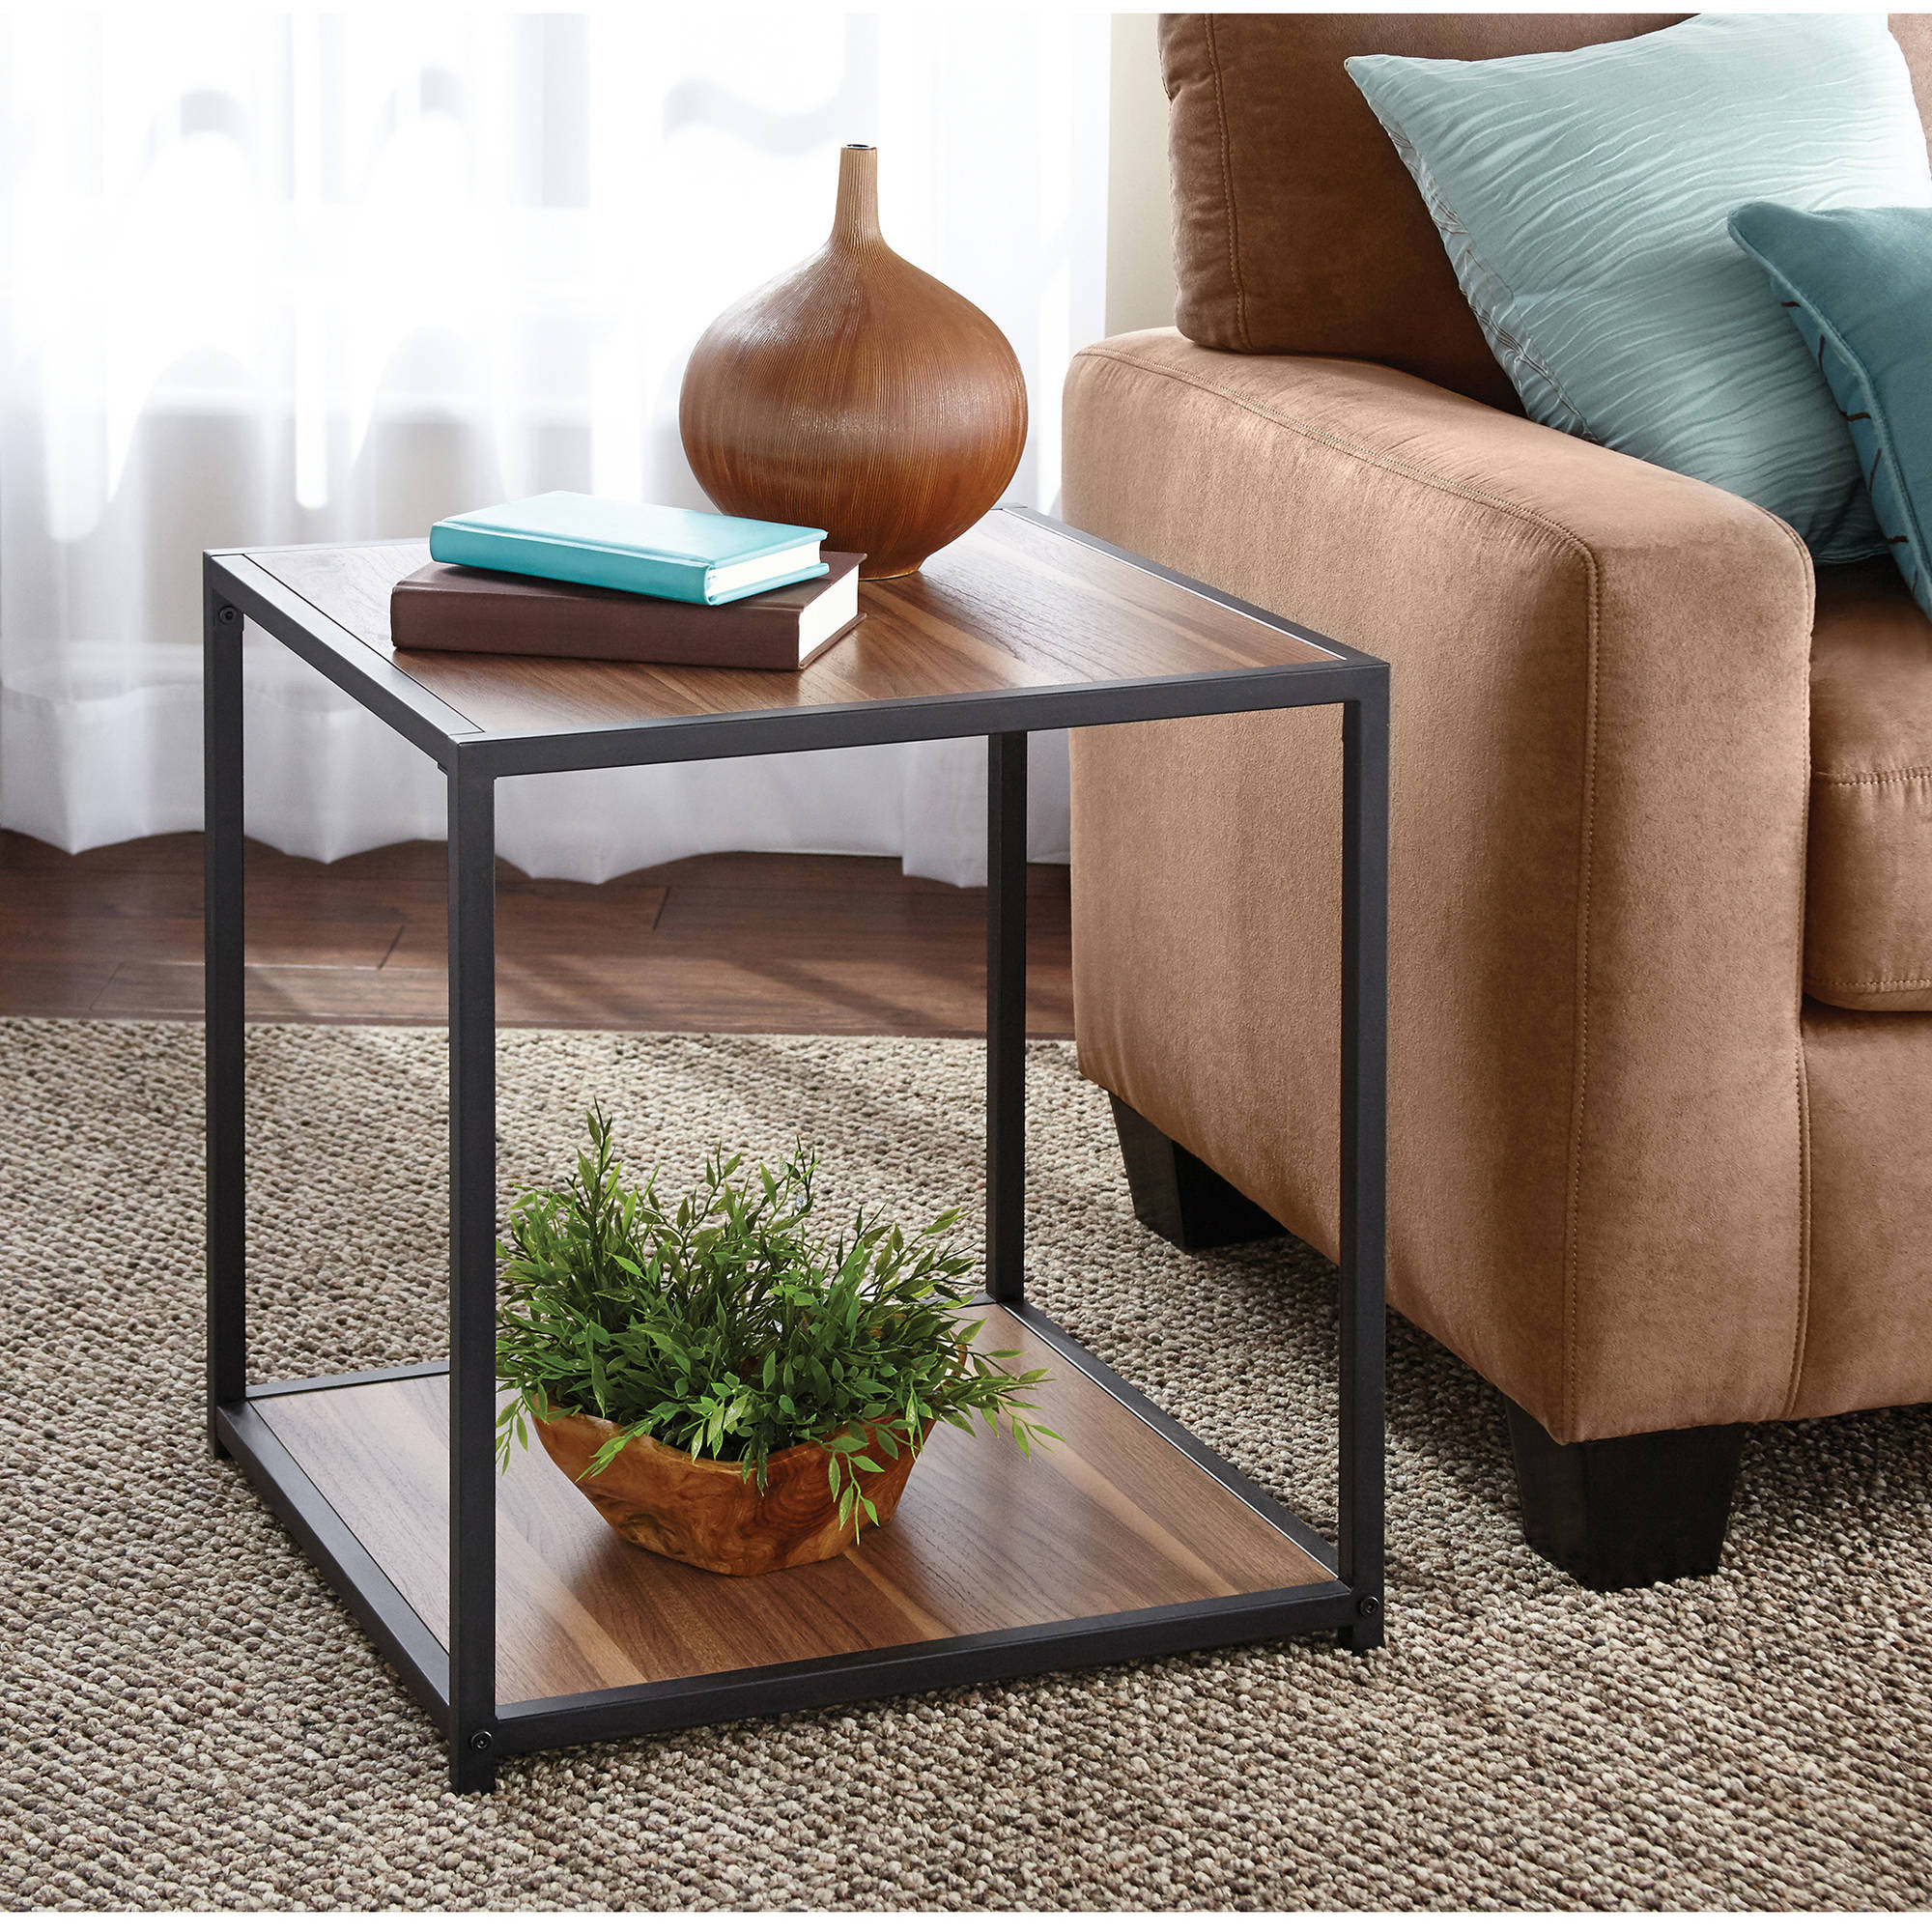 furniture beautiful collection coffee table rustic with wheels end tables target patio skinny side console lifting wood lift accent drawer corner dining set small shelves black